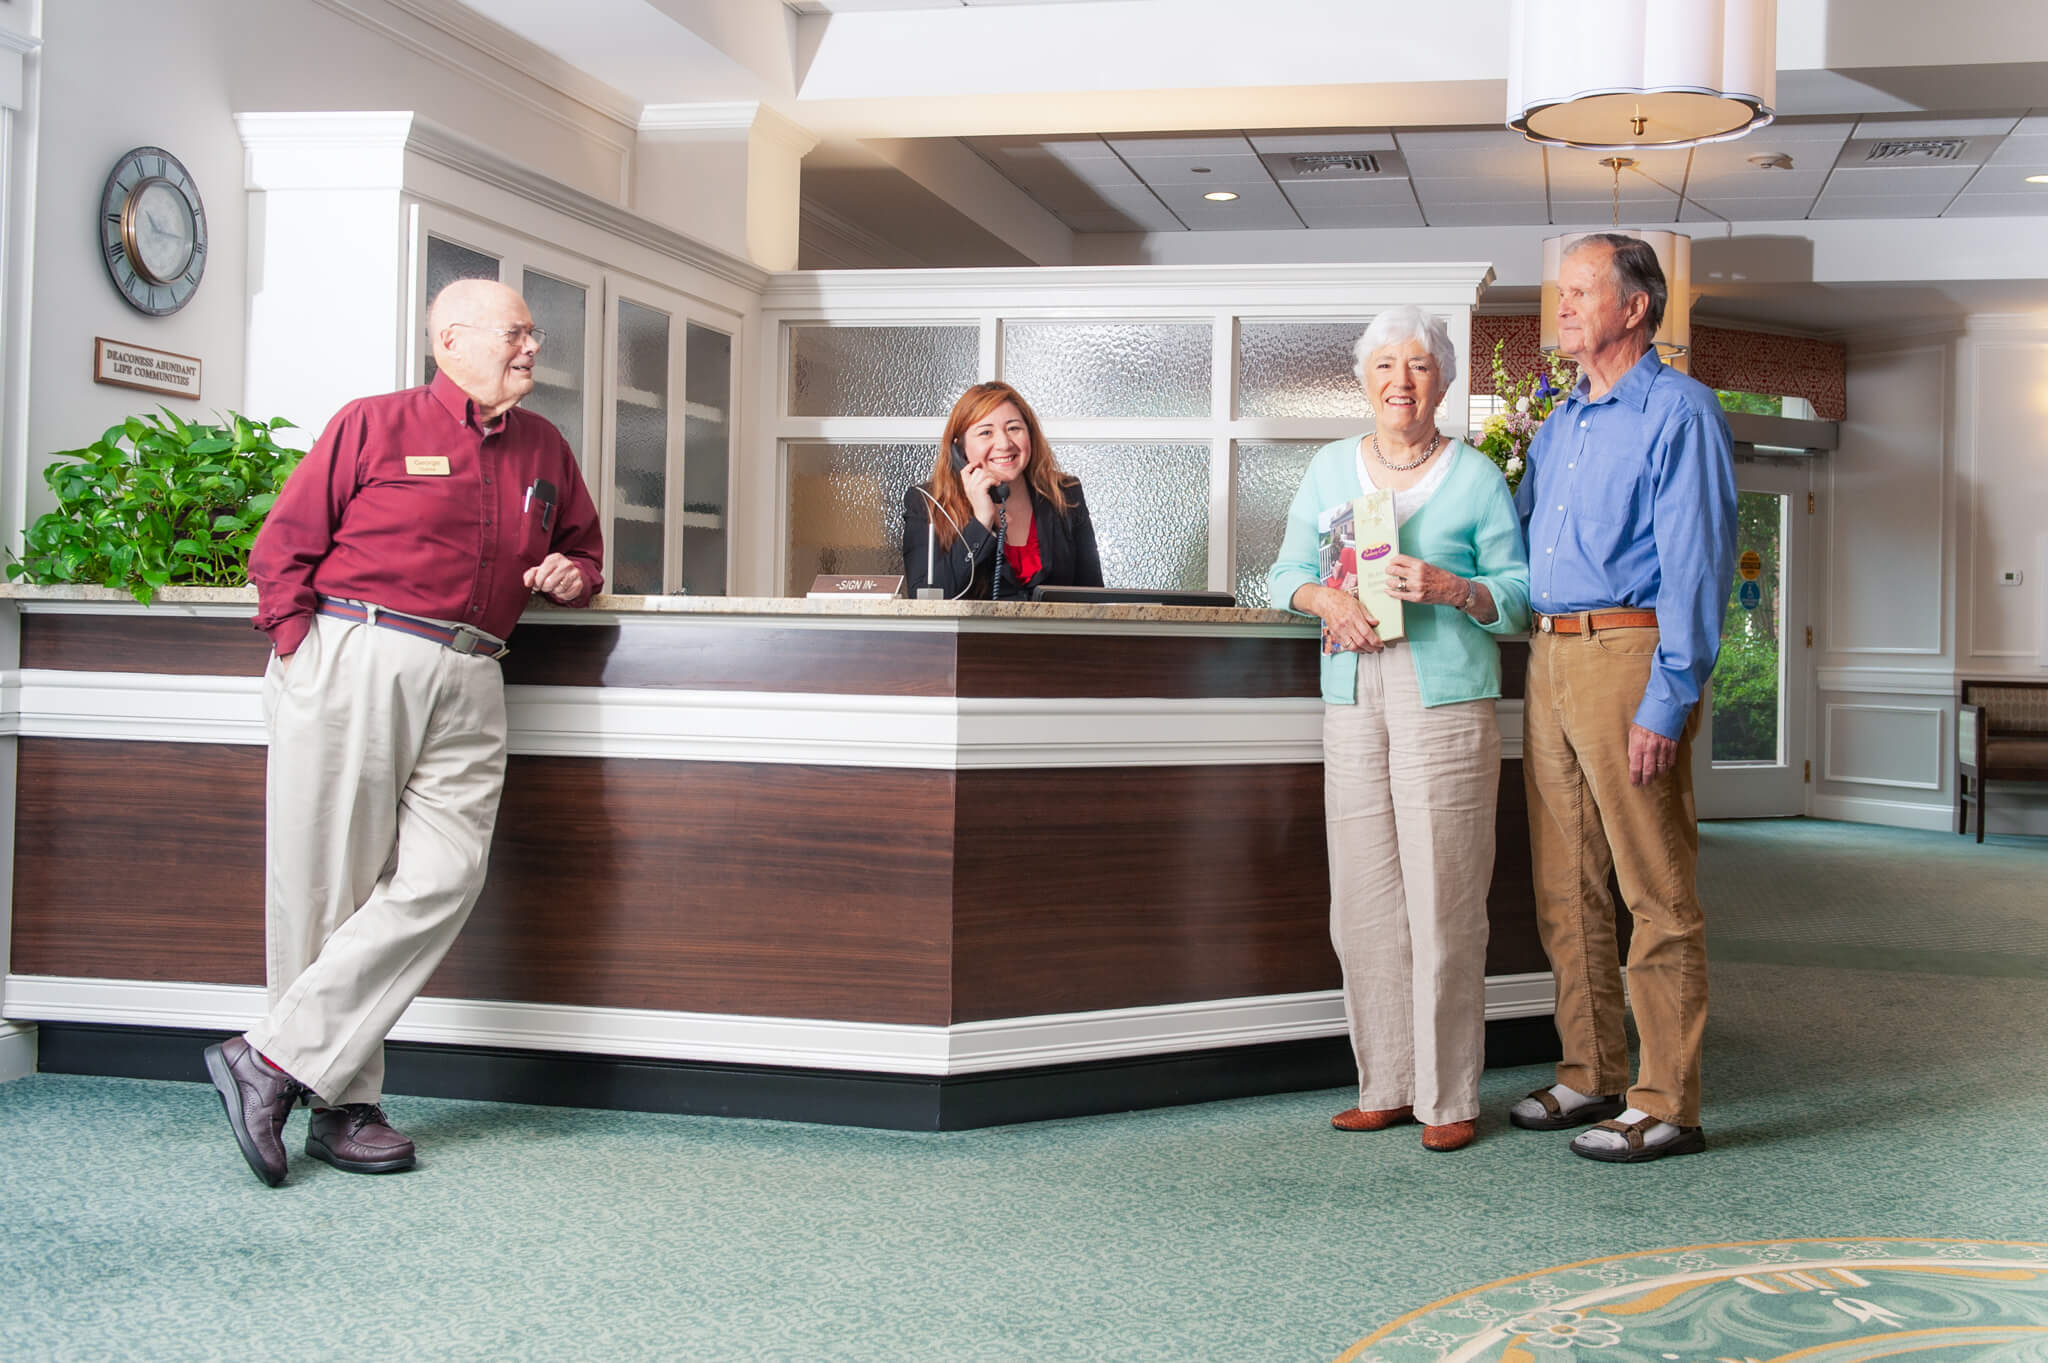 Concierge Desk with Residents